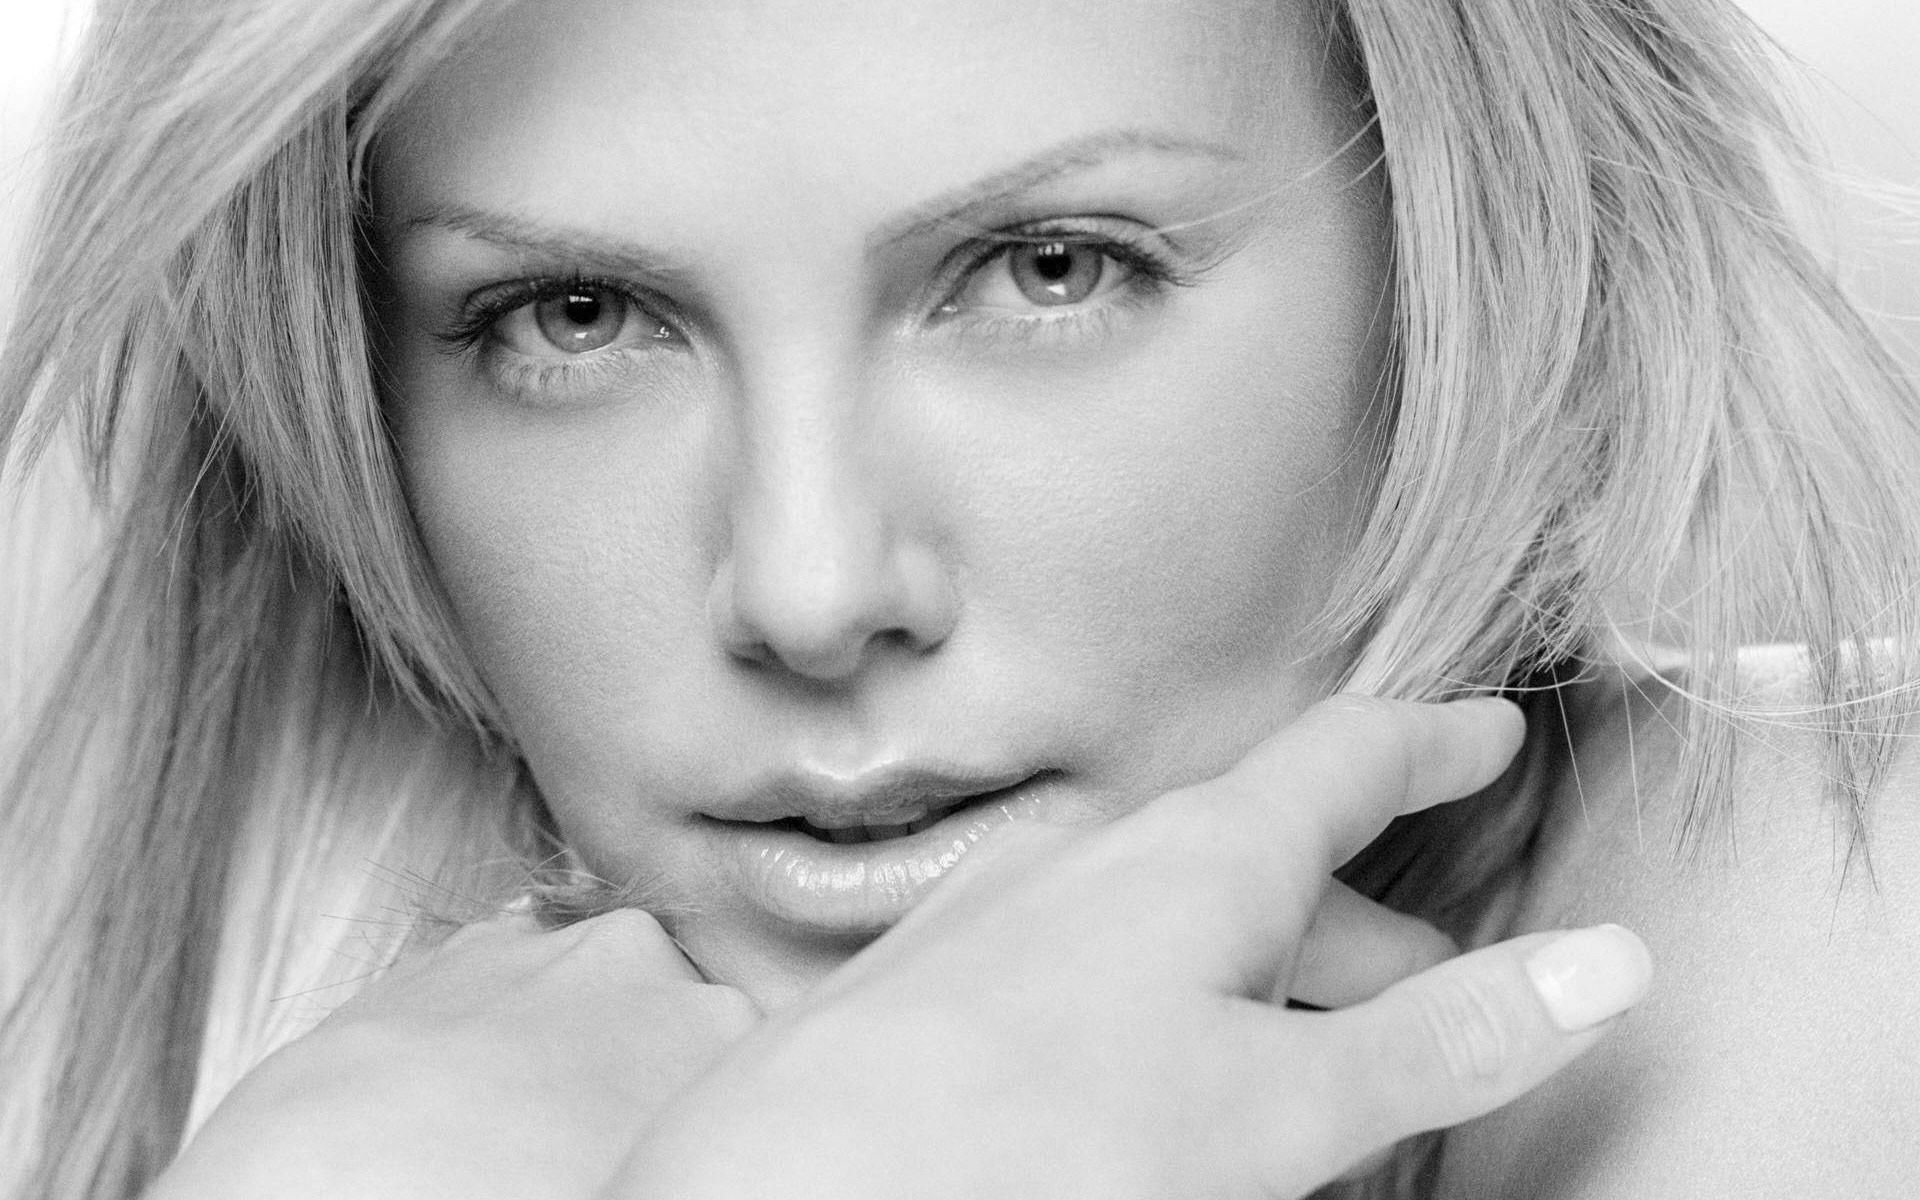 Charlize Theron Style Oscars Hd Wallpapers 1080p For Mobile